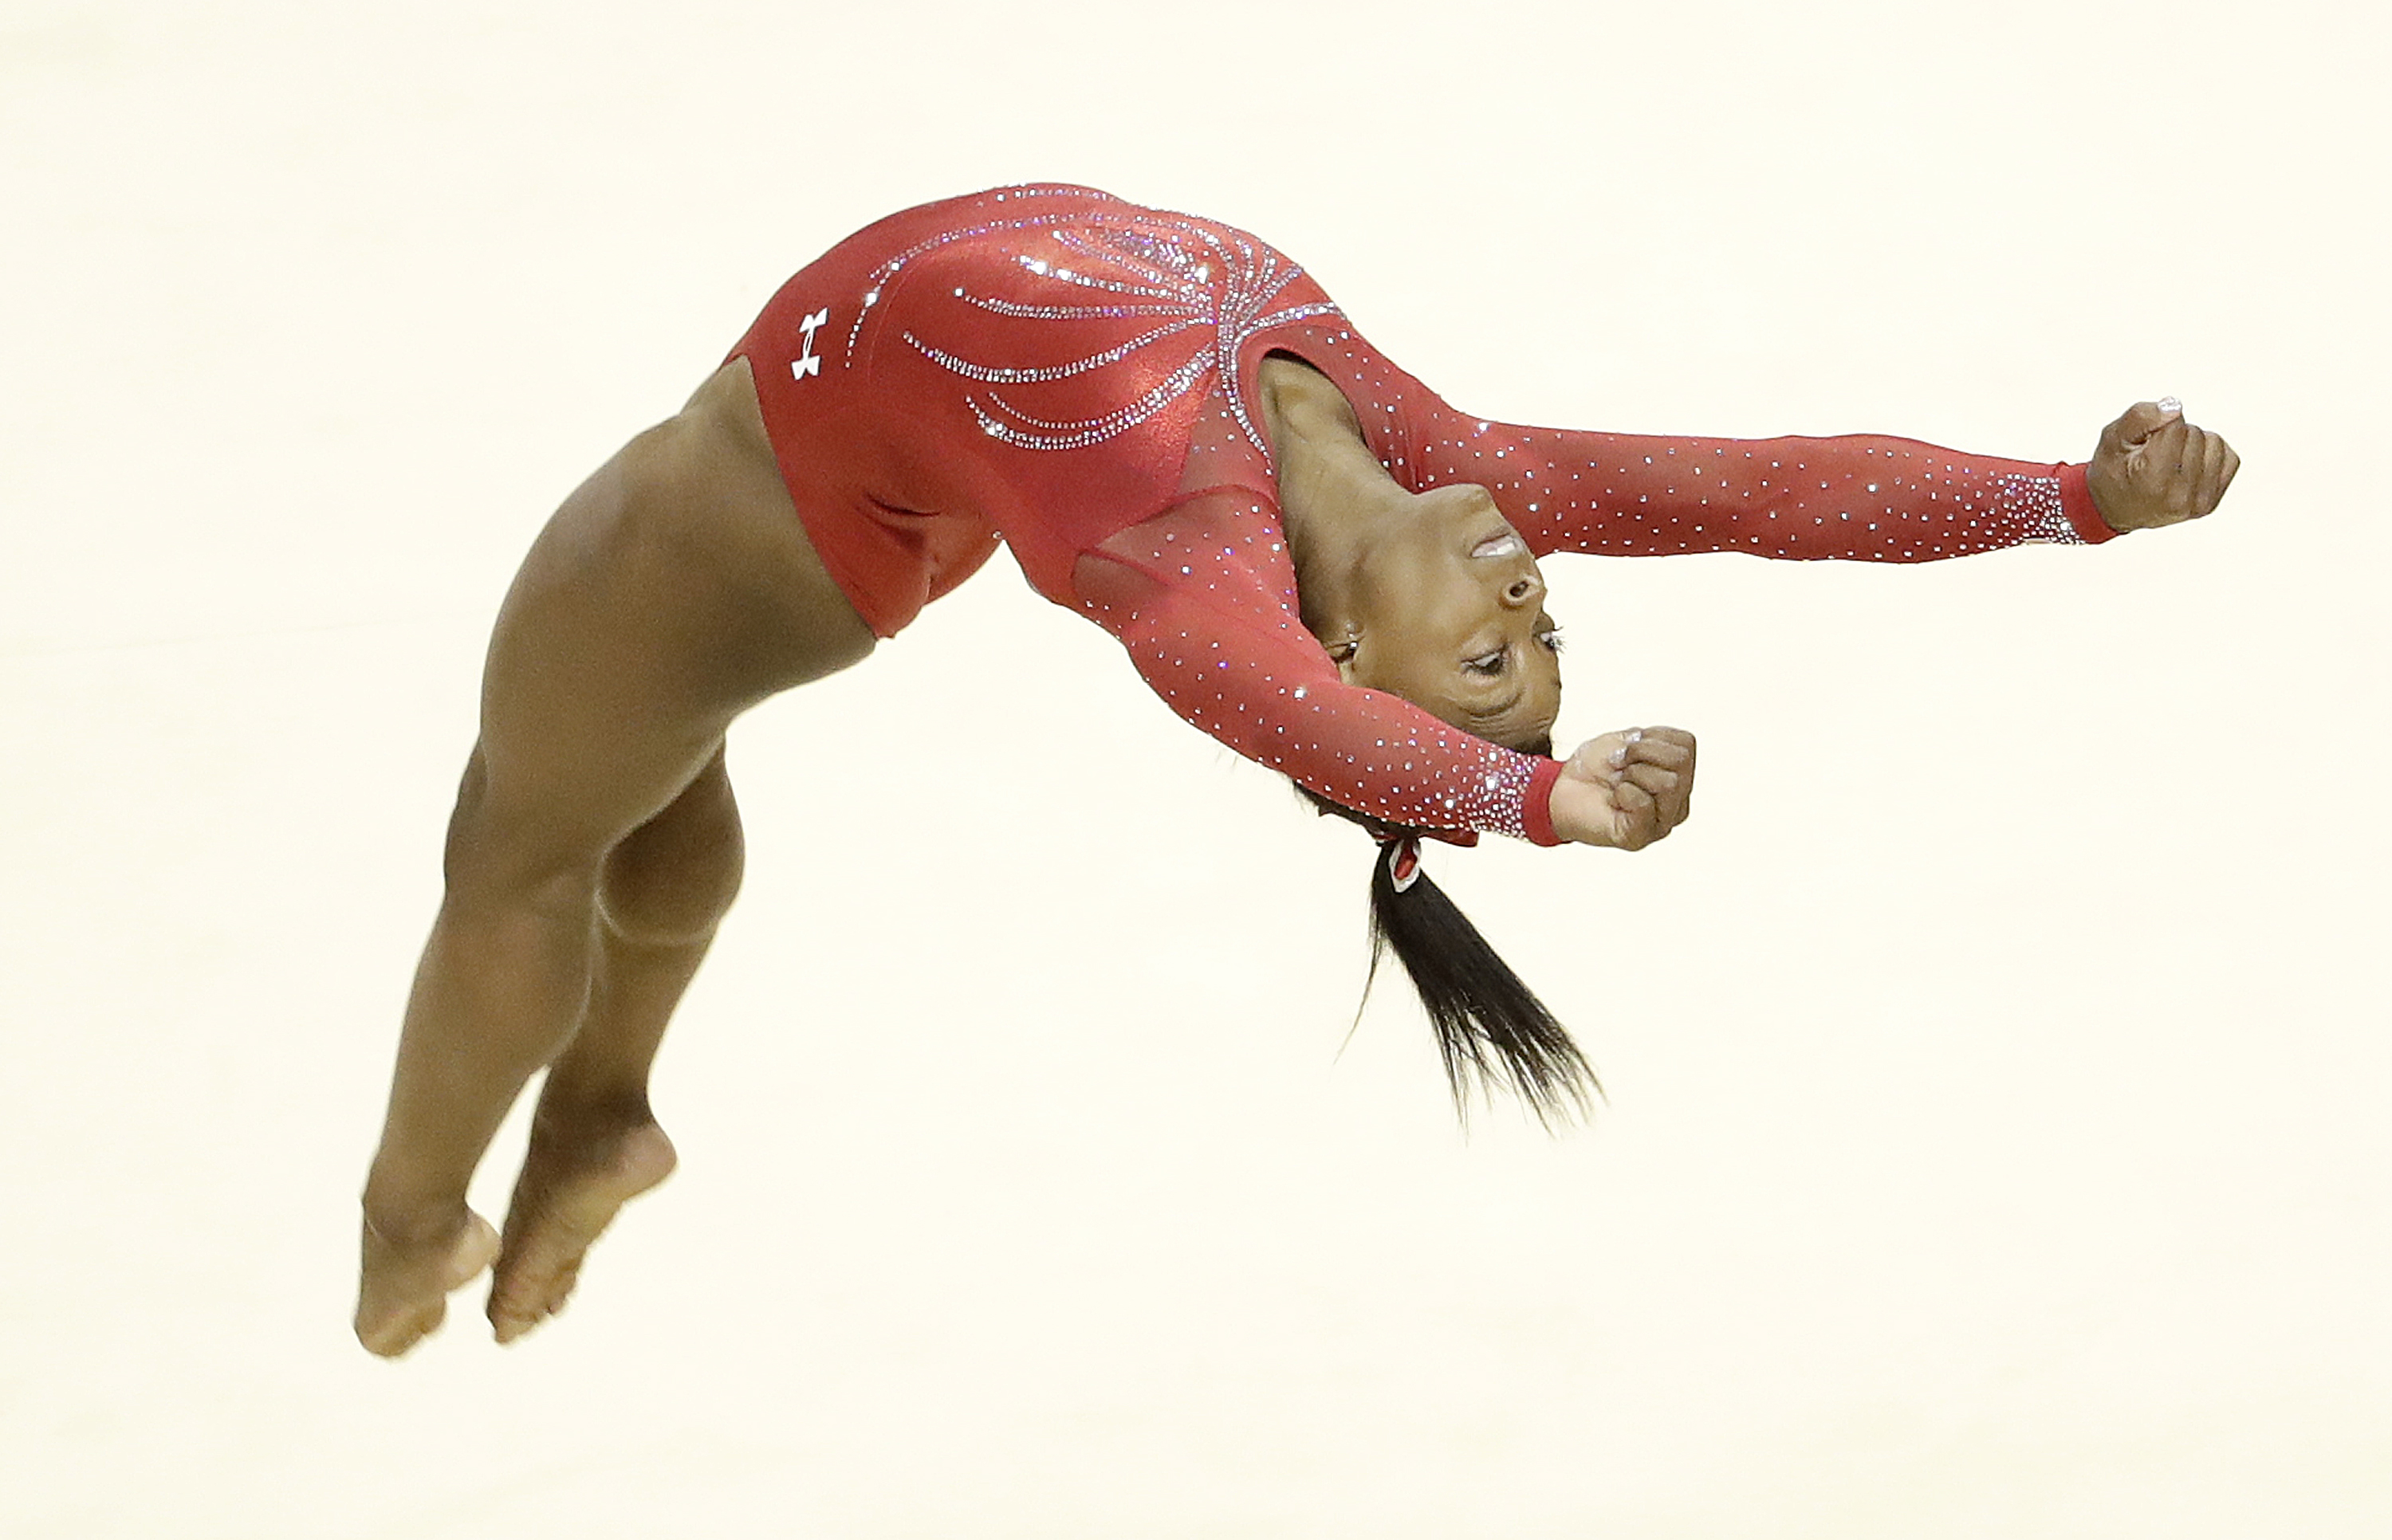 Simone Biles competes on the floor exercise during the women's U.S. Olympic gymnastics trials in San Jose, Calif., Sunday, July 10, 2016. (AP Photo/Gregory Bull)